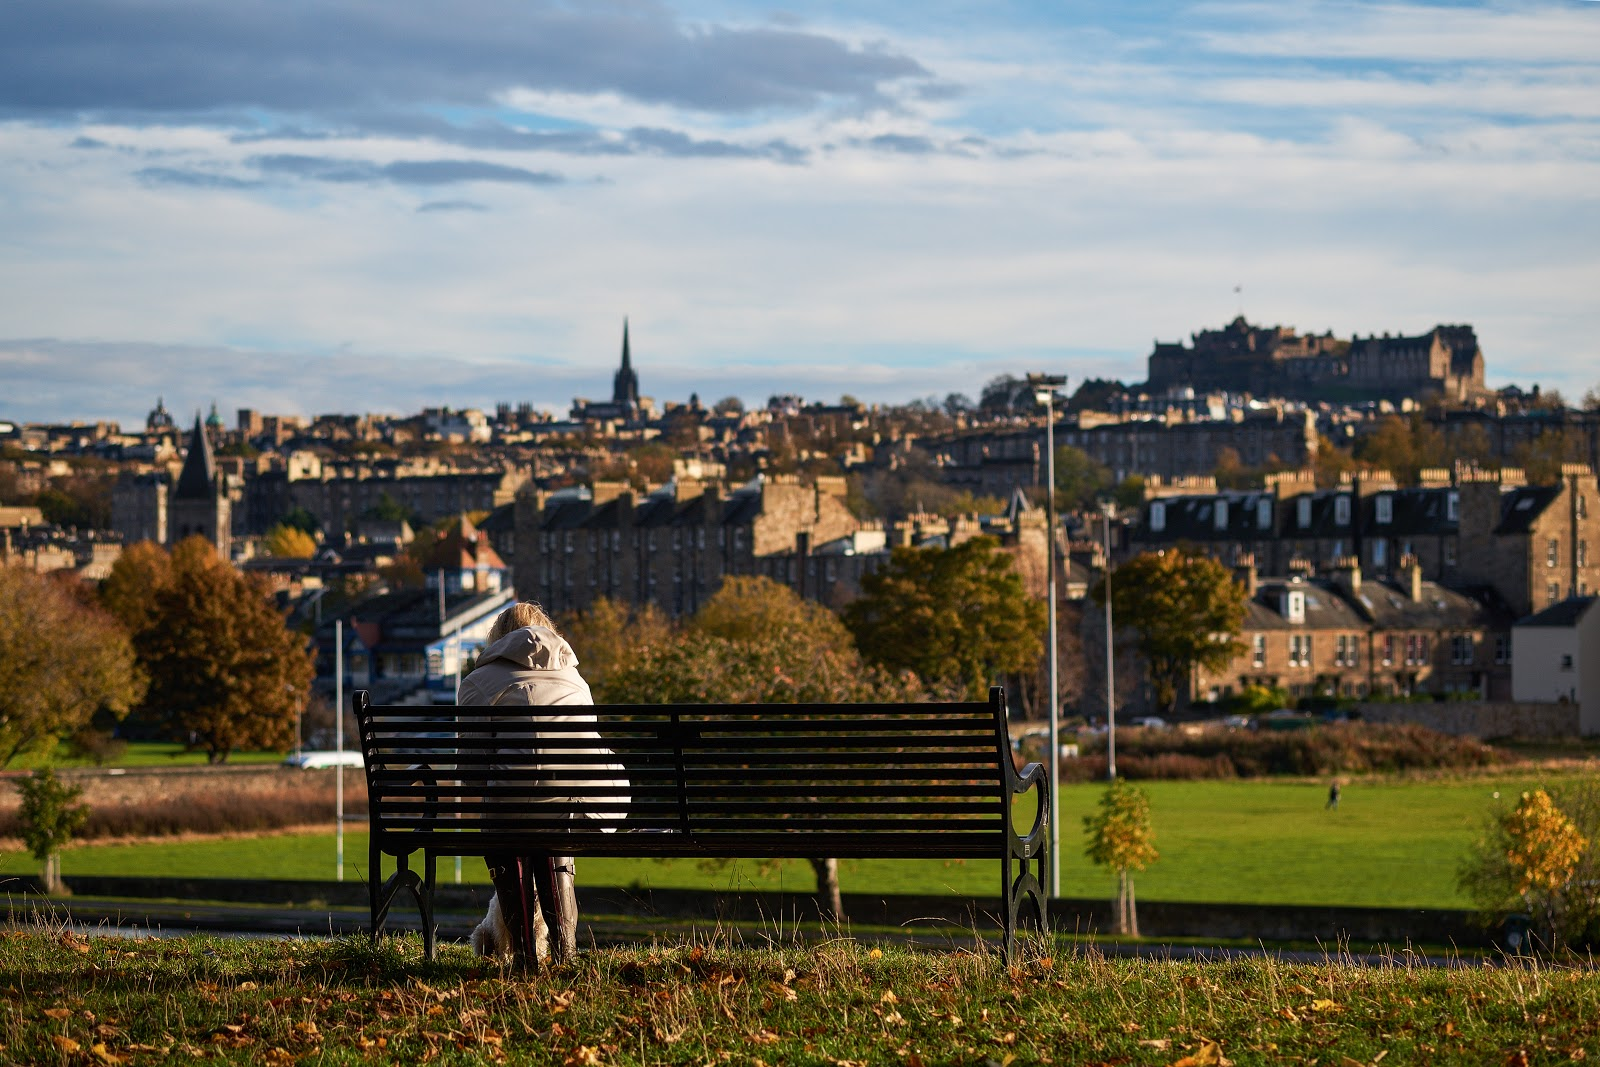 Saturday Afternoon in Inverleith Park | Fragments of My Life